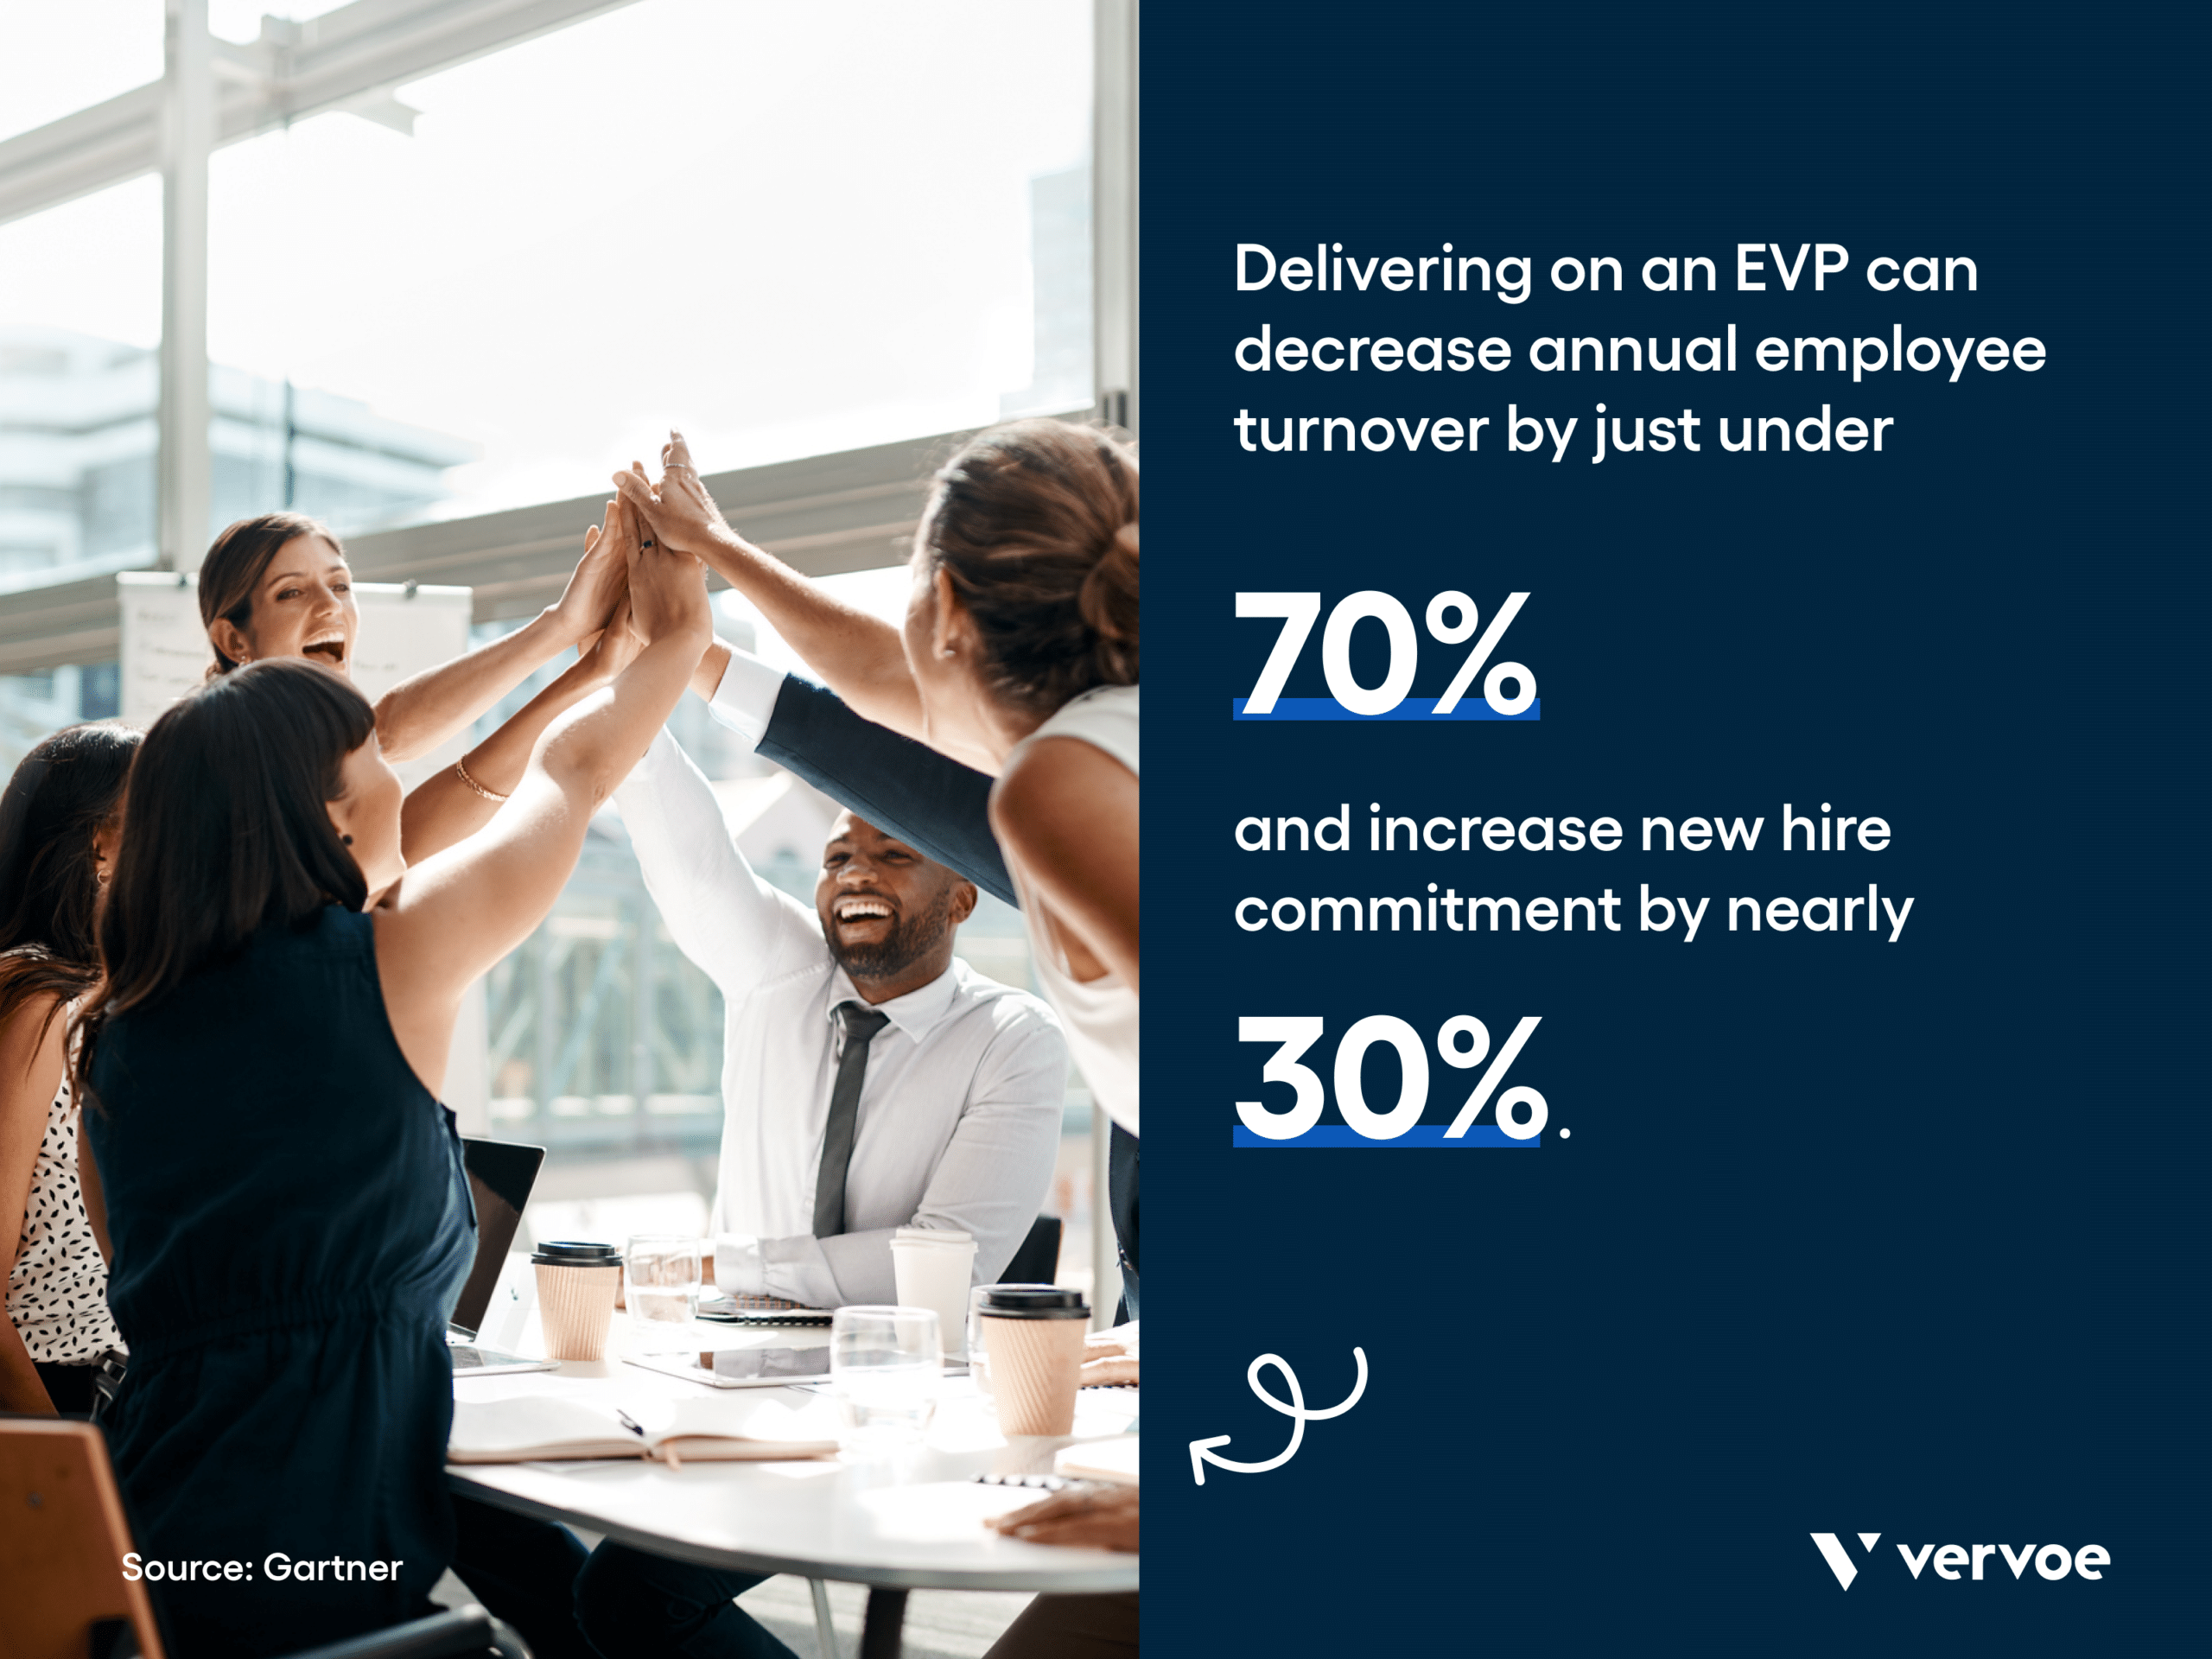 Infographic showing evps can decrease turnover and increase new hire commitment